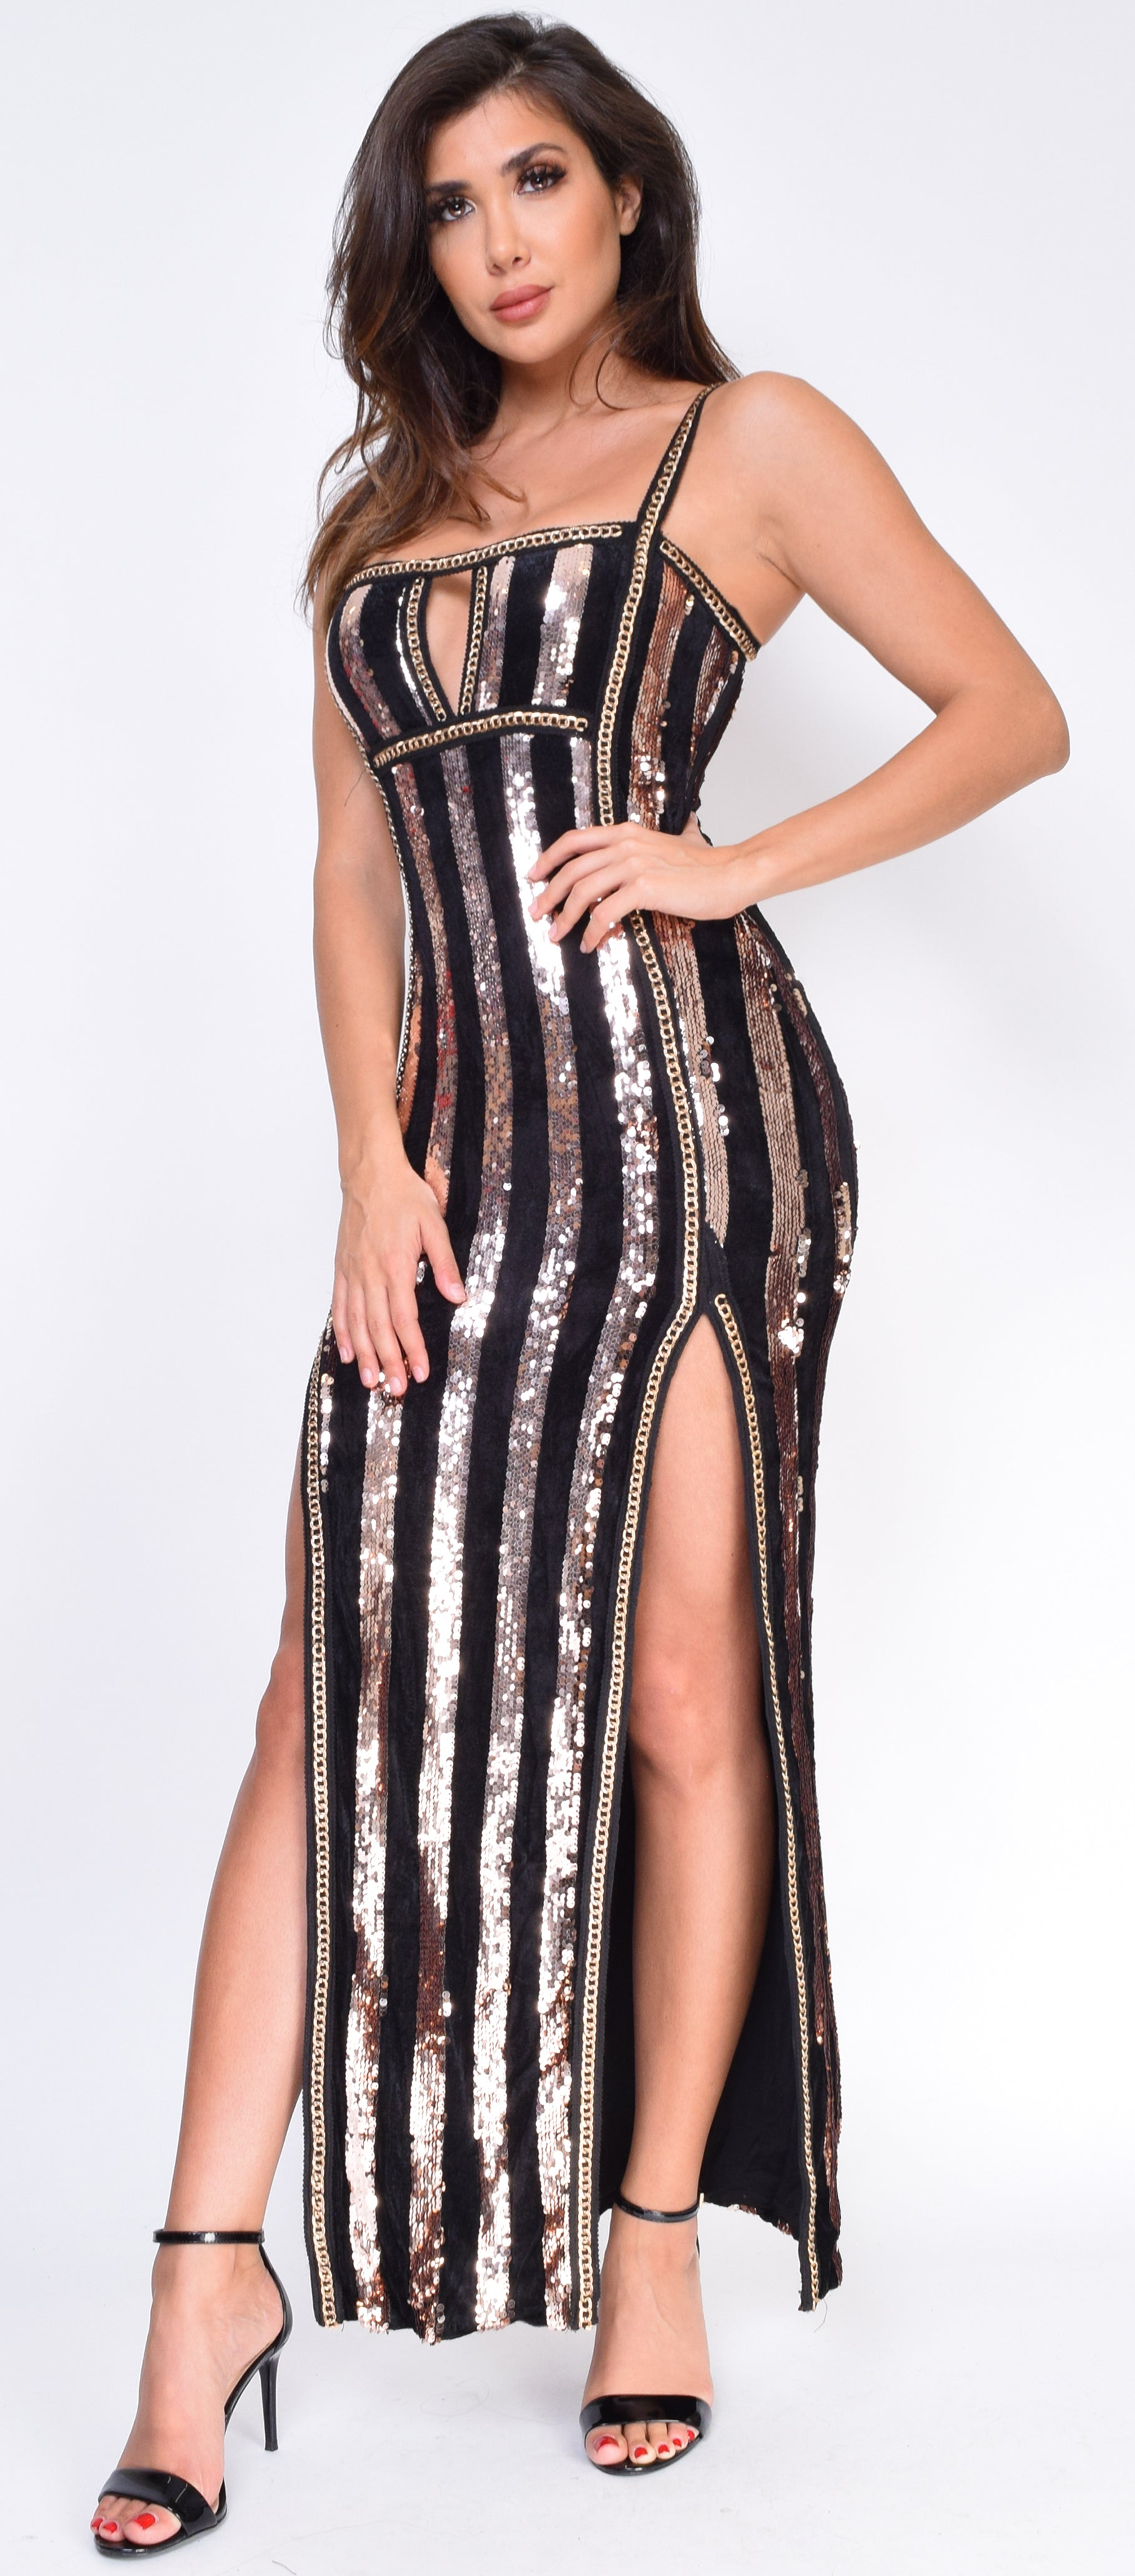 a40b55b1504 Evren Black Rose Gold Velvet Sequin Maxi Dress - Emprada